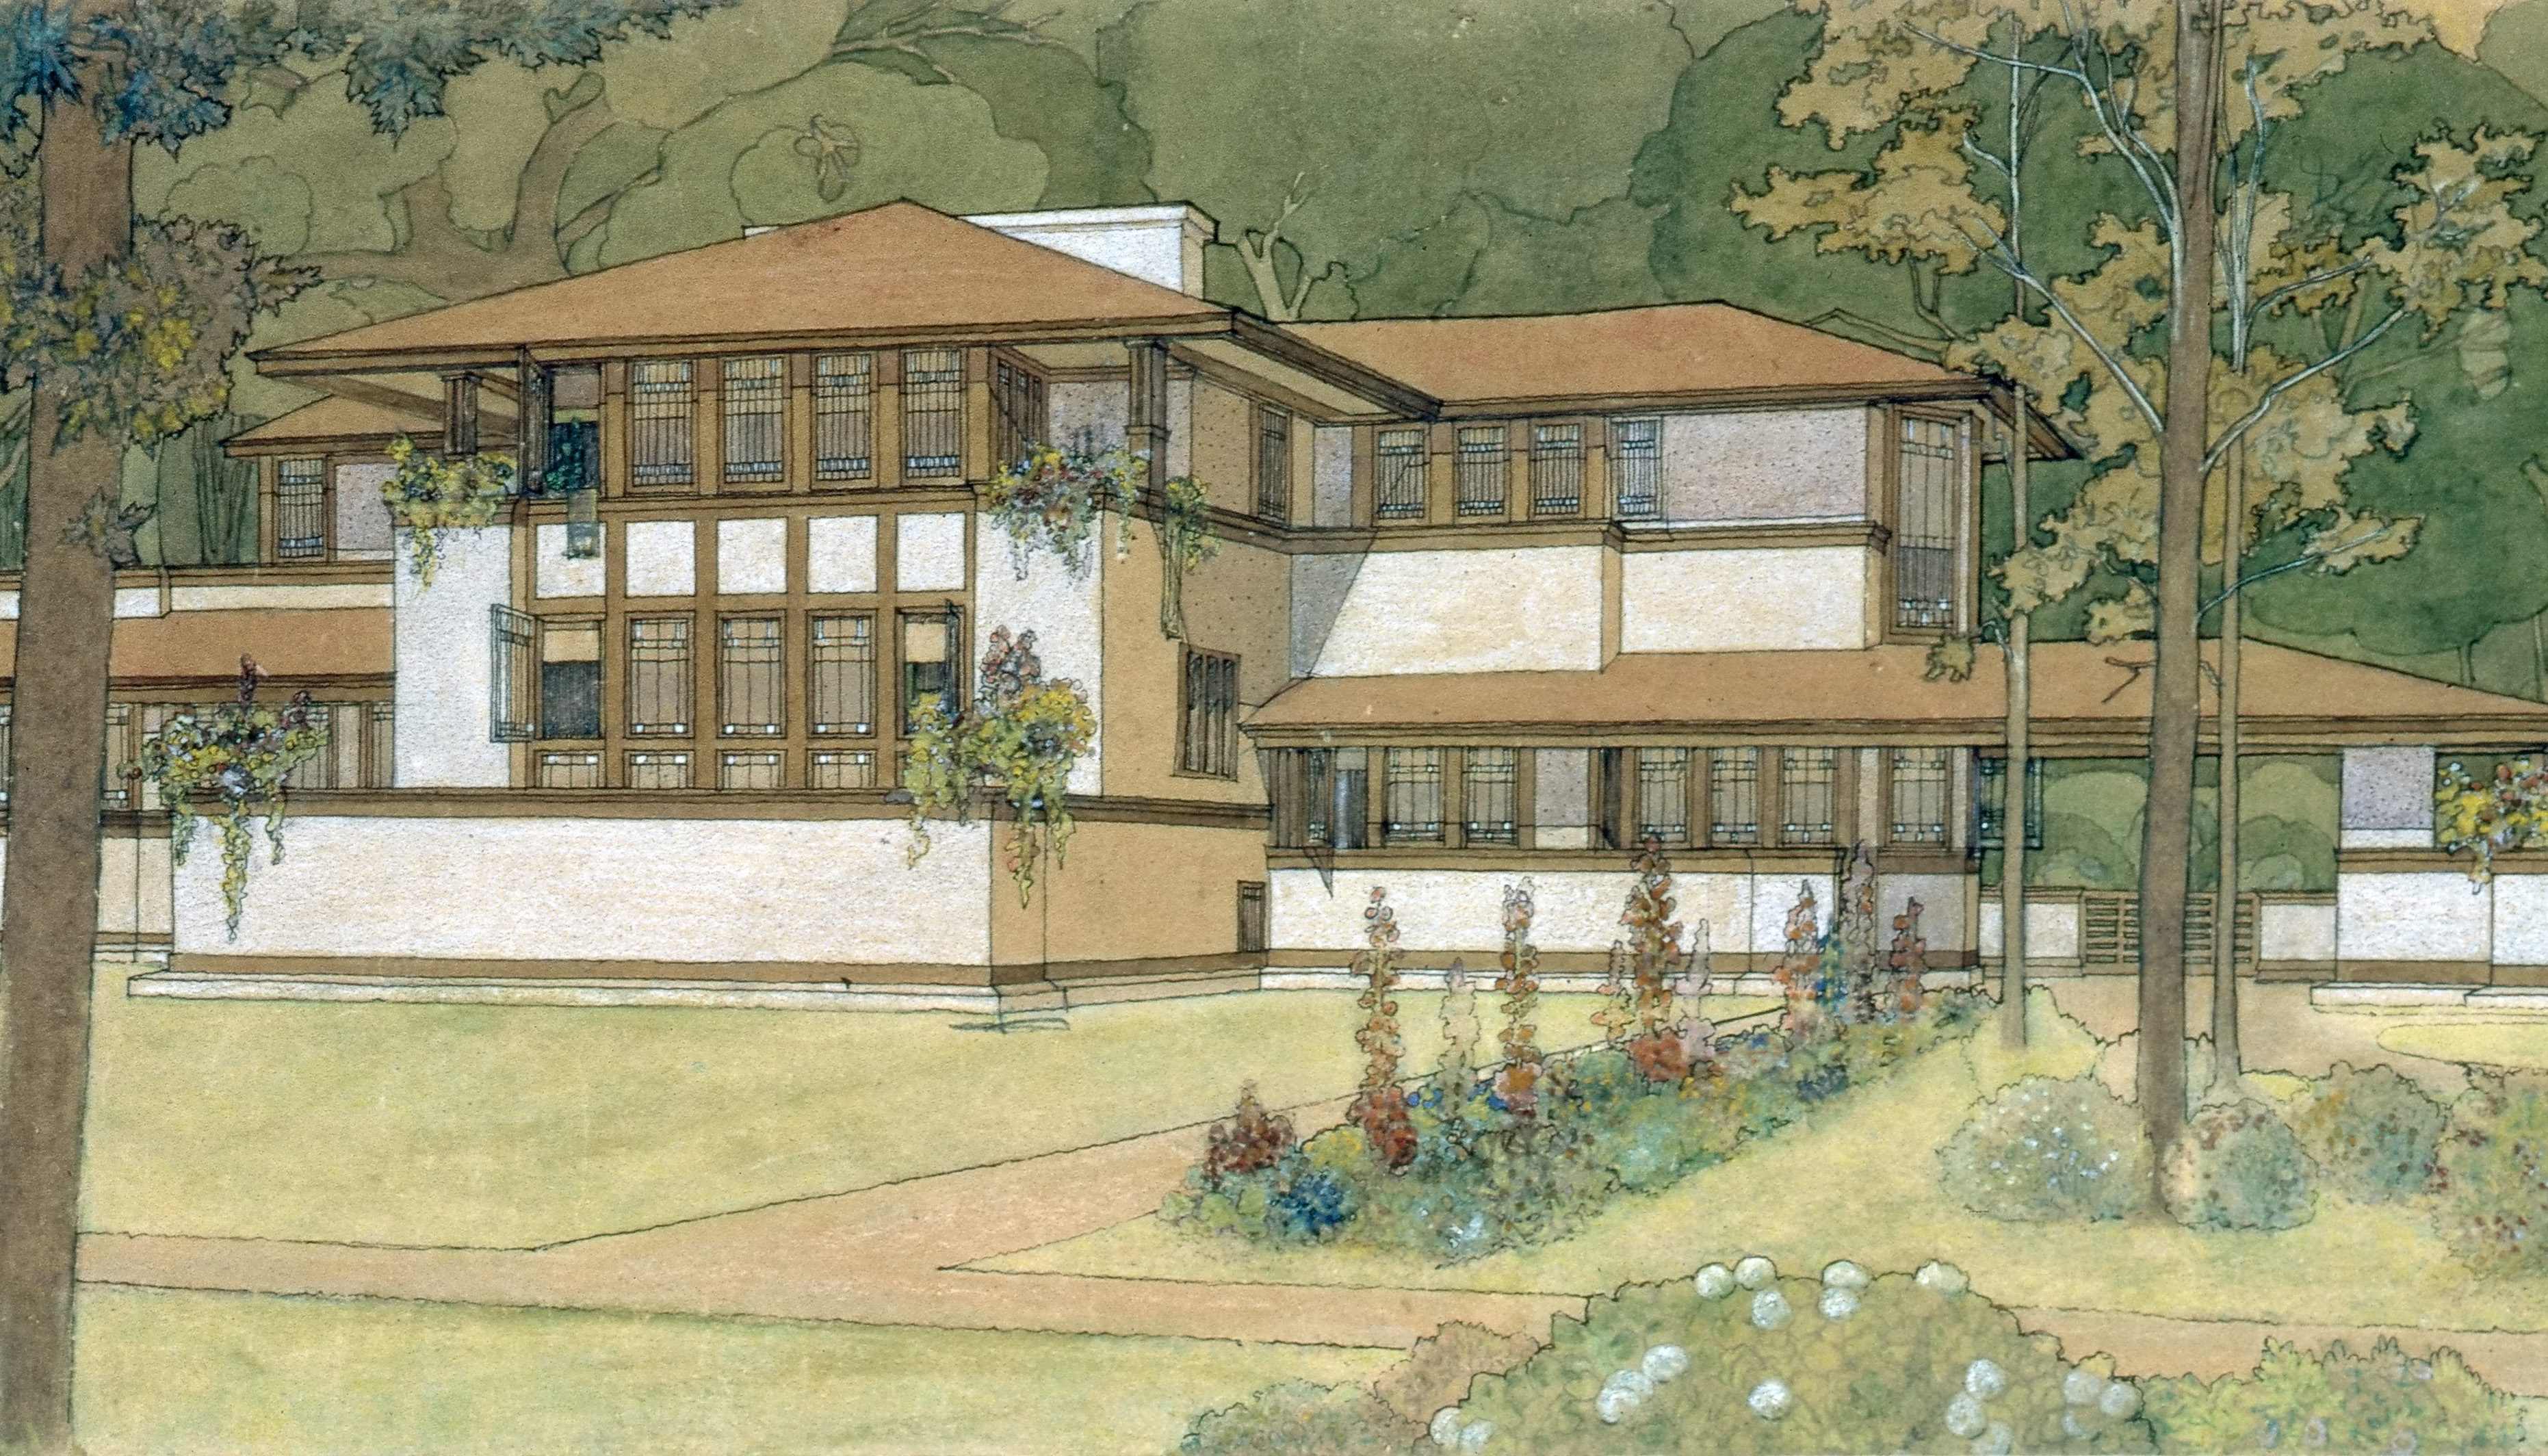 Frank Lloyd Wright Meet Marion Mahony Griffin Frank Lloyd Wright S Best Frenemy Curbed